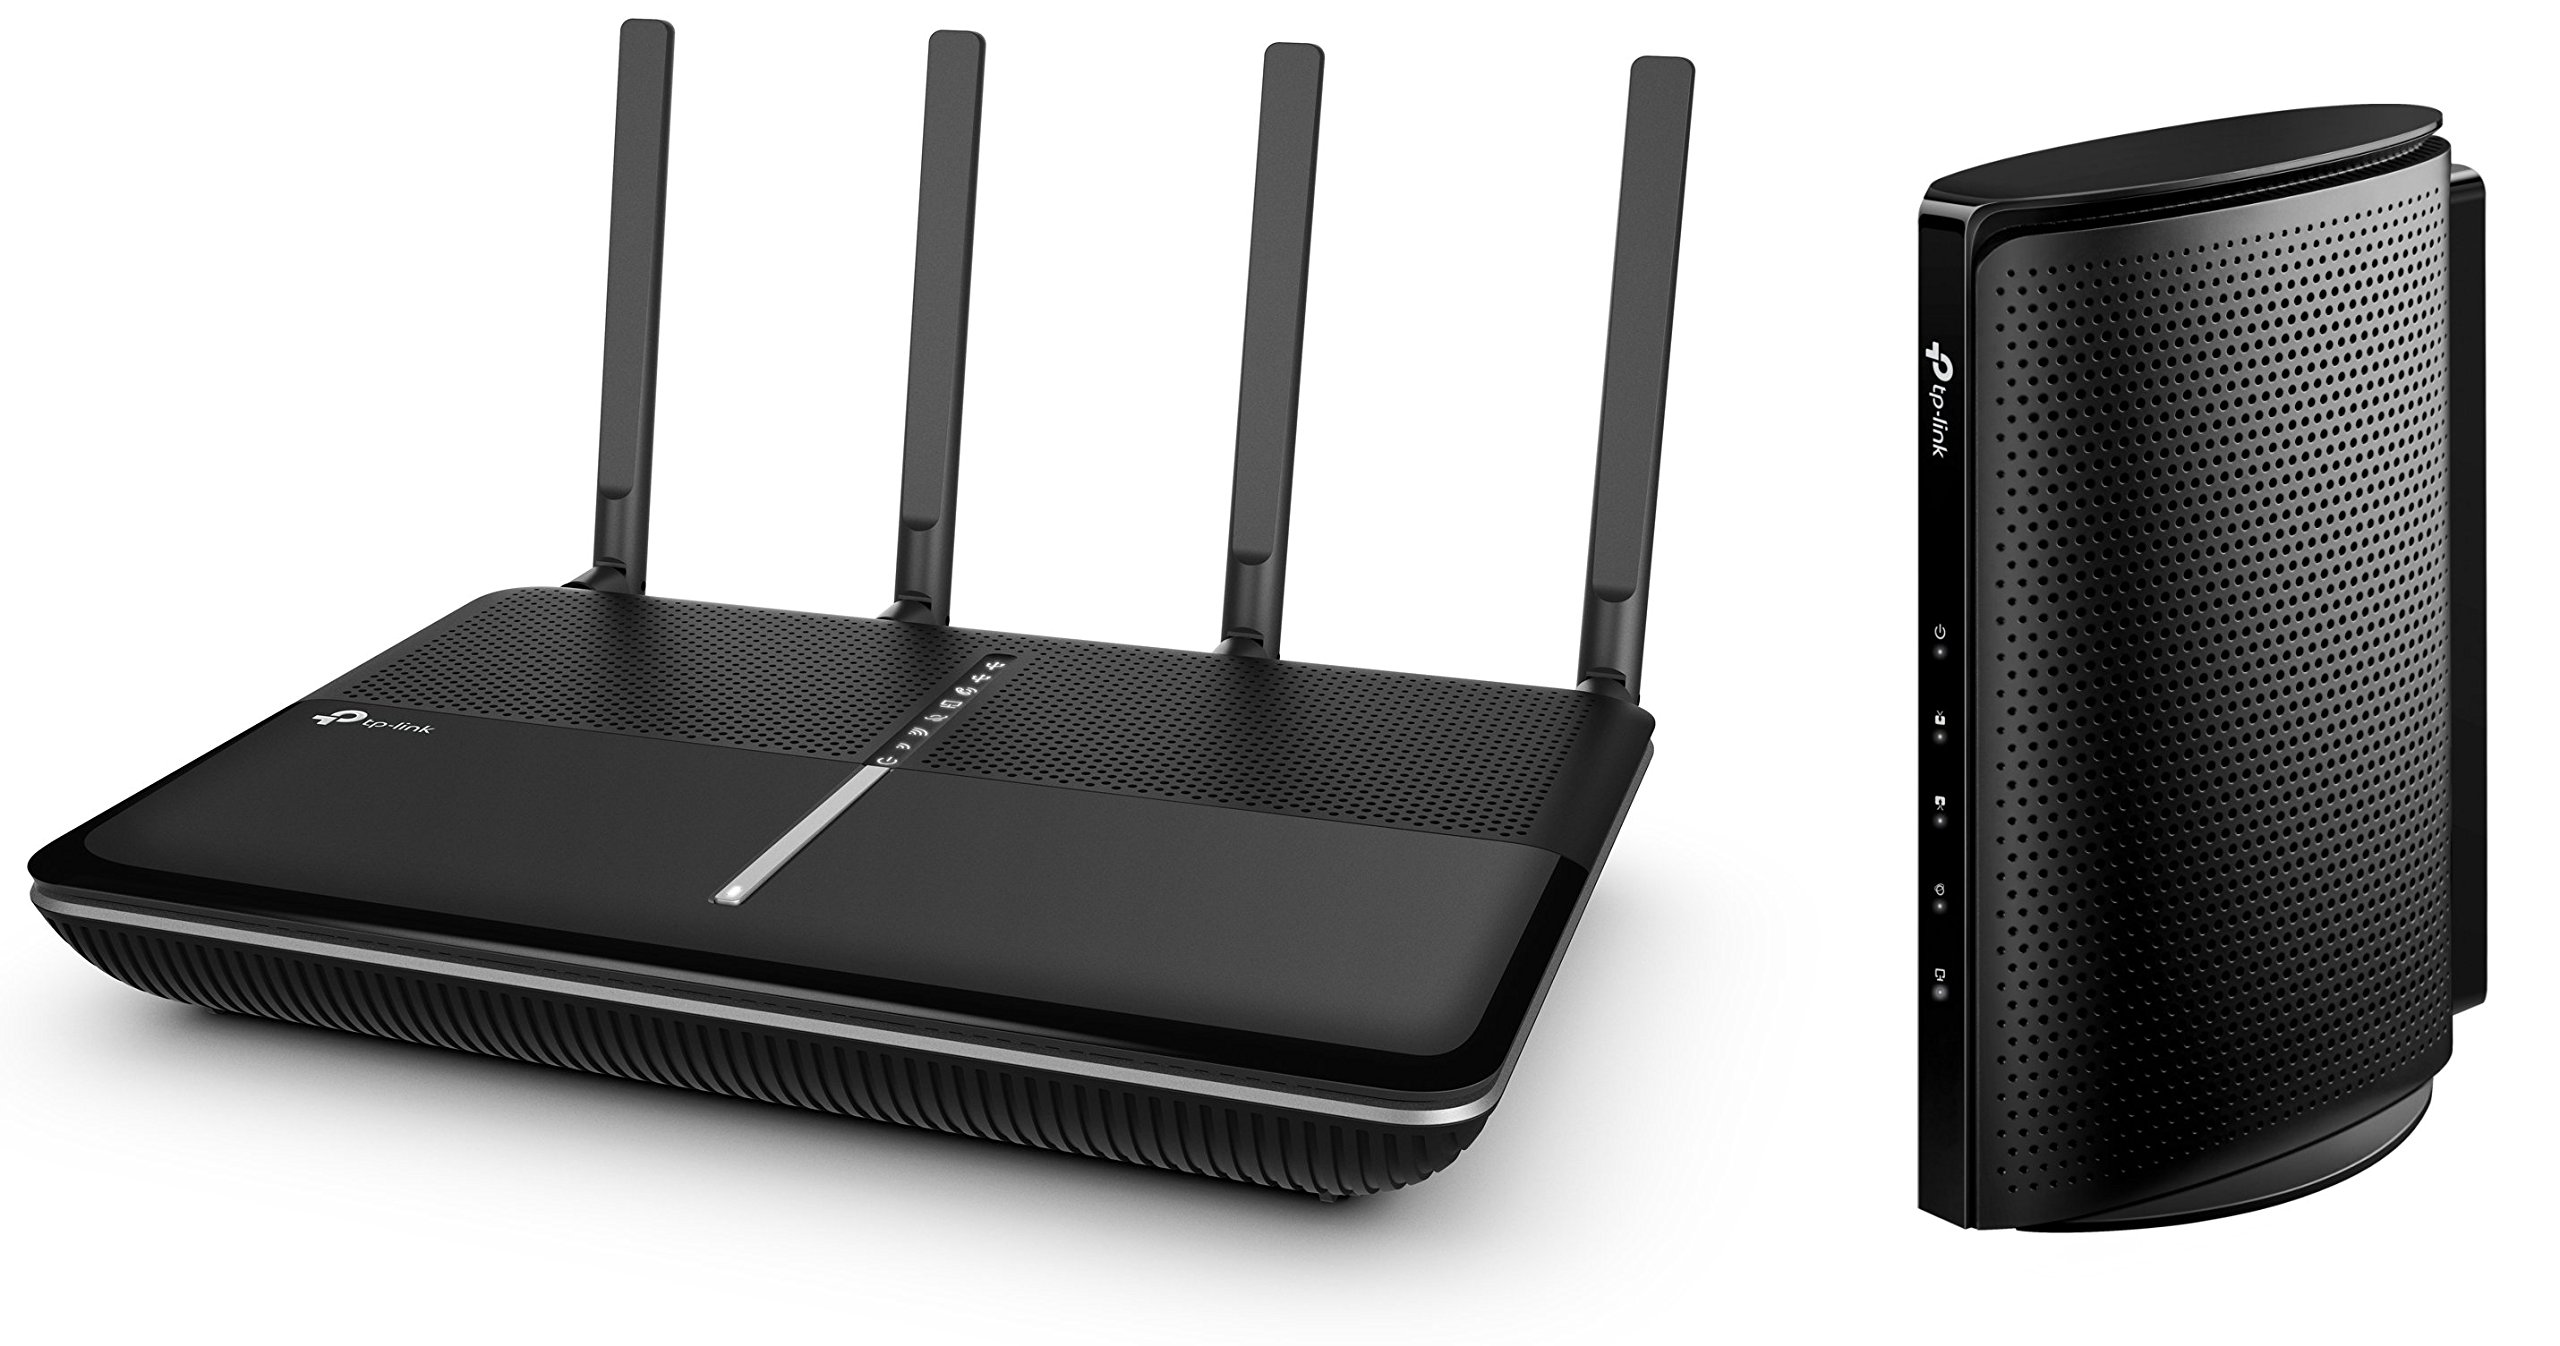 TP-Link Upgrade to a Faster, More Secure Wi-Fi Bundle: Archer C3150 V2 MU-MIMO Wireless Router w/ Comprehensive Antivirus and Security and TC7650 (24x8) DOCSIS 3.0 High Speed Cable Modem